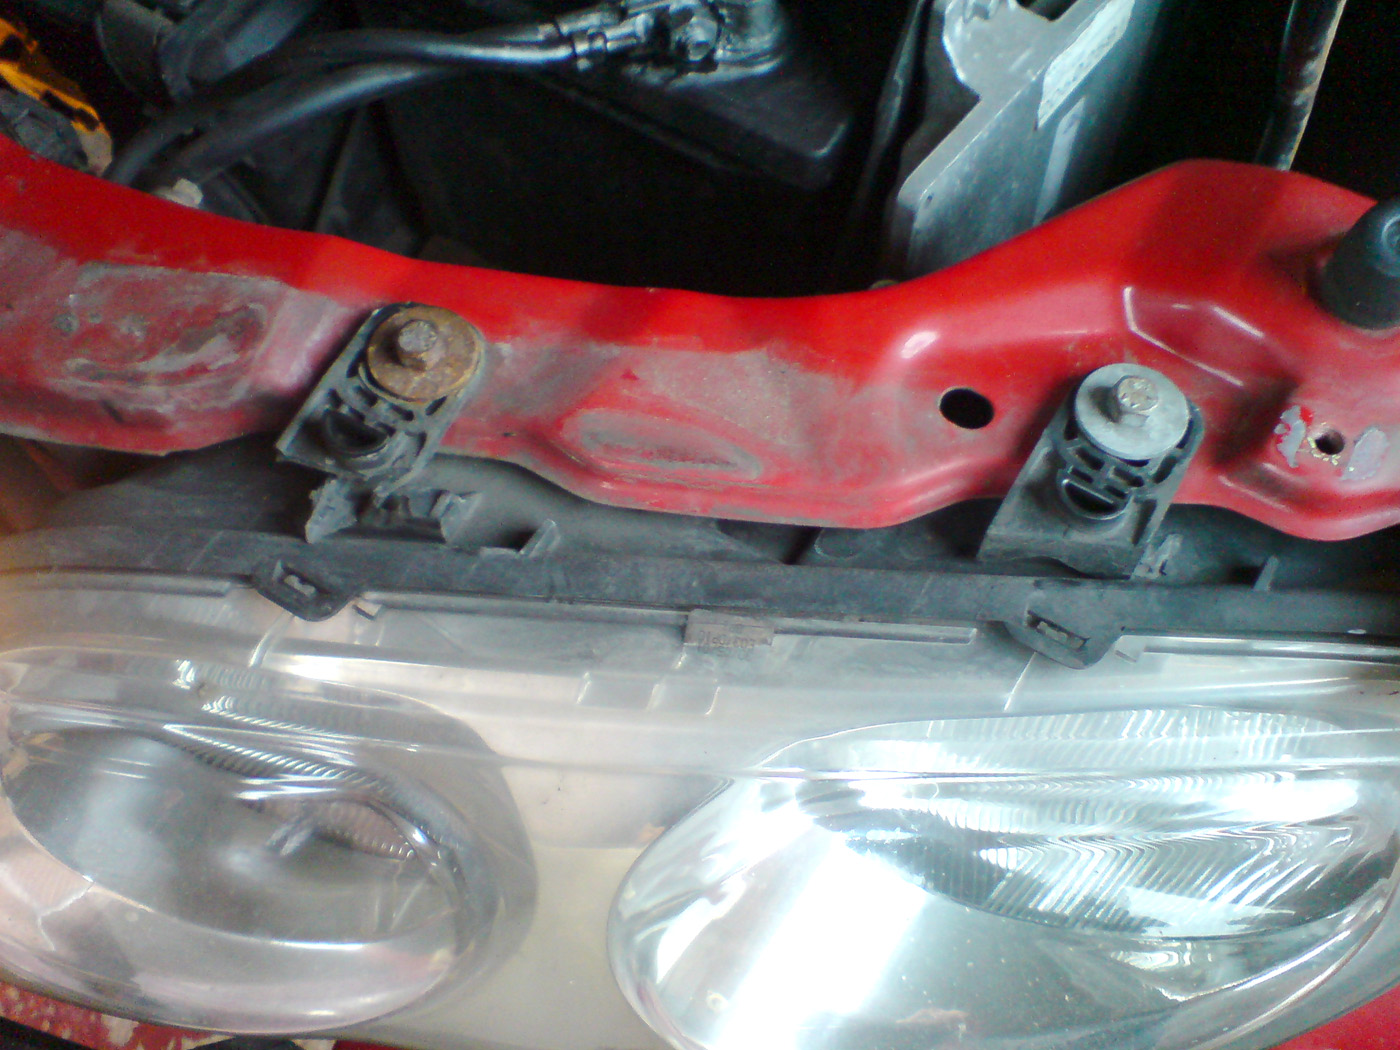 MG ZR Headlights Fitted | MG Rover 25 Build Blog